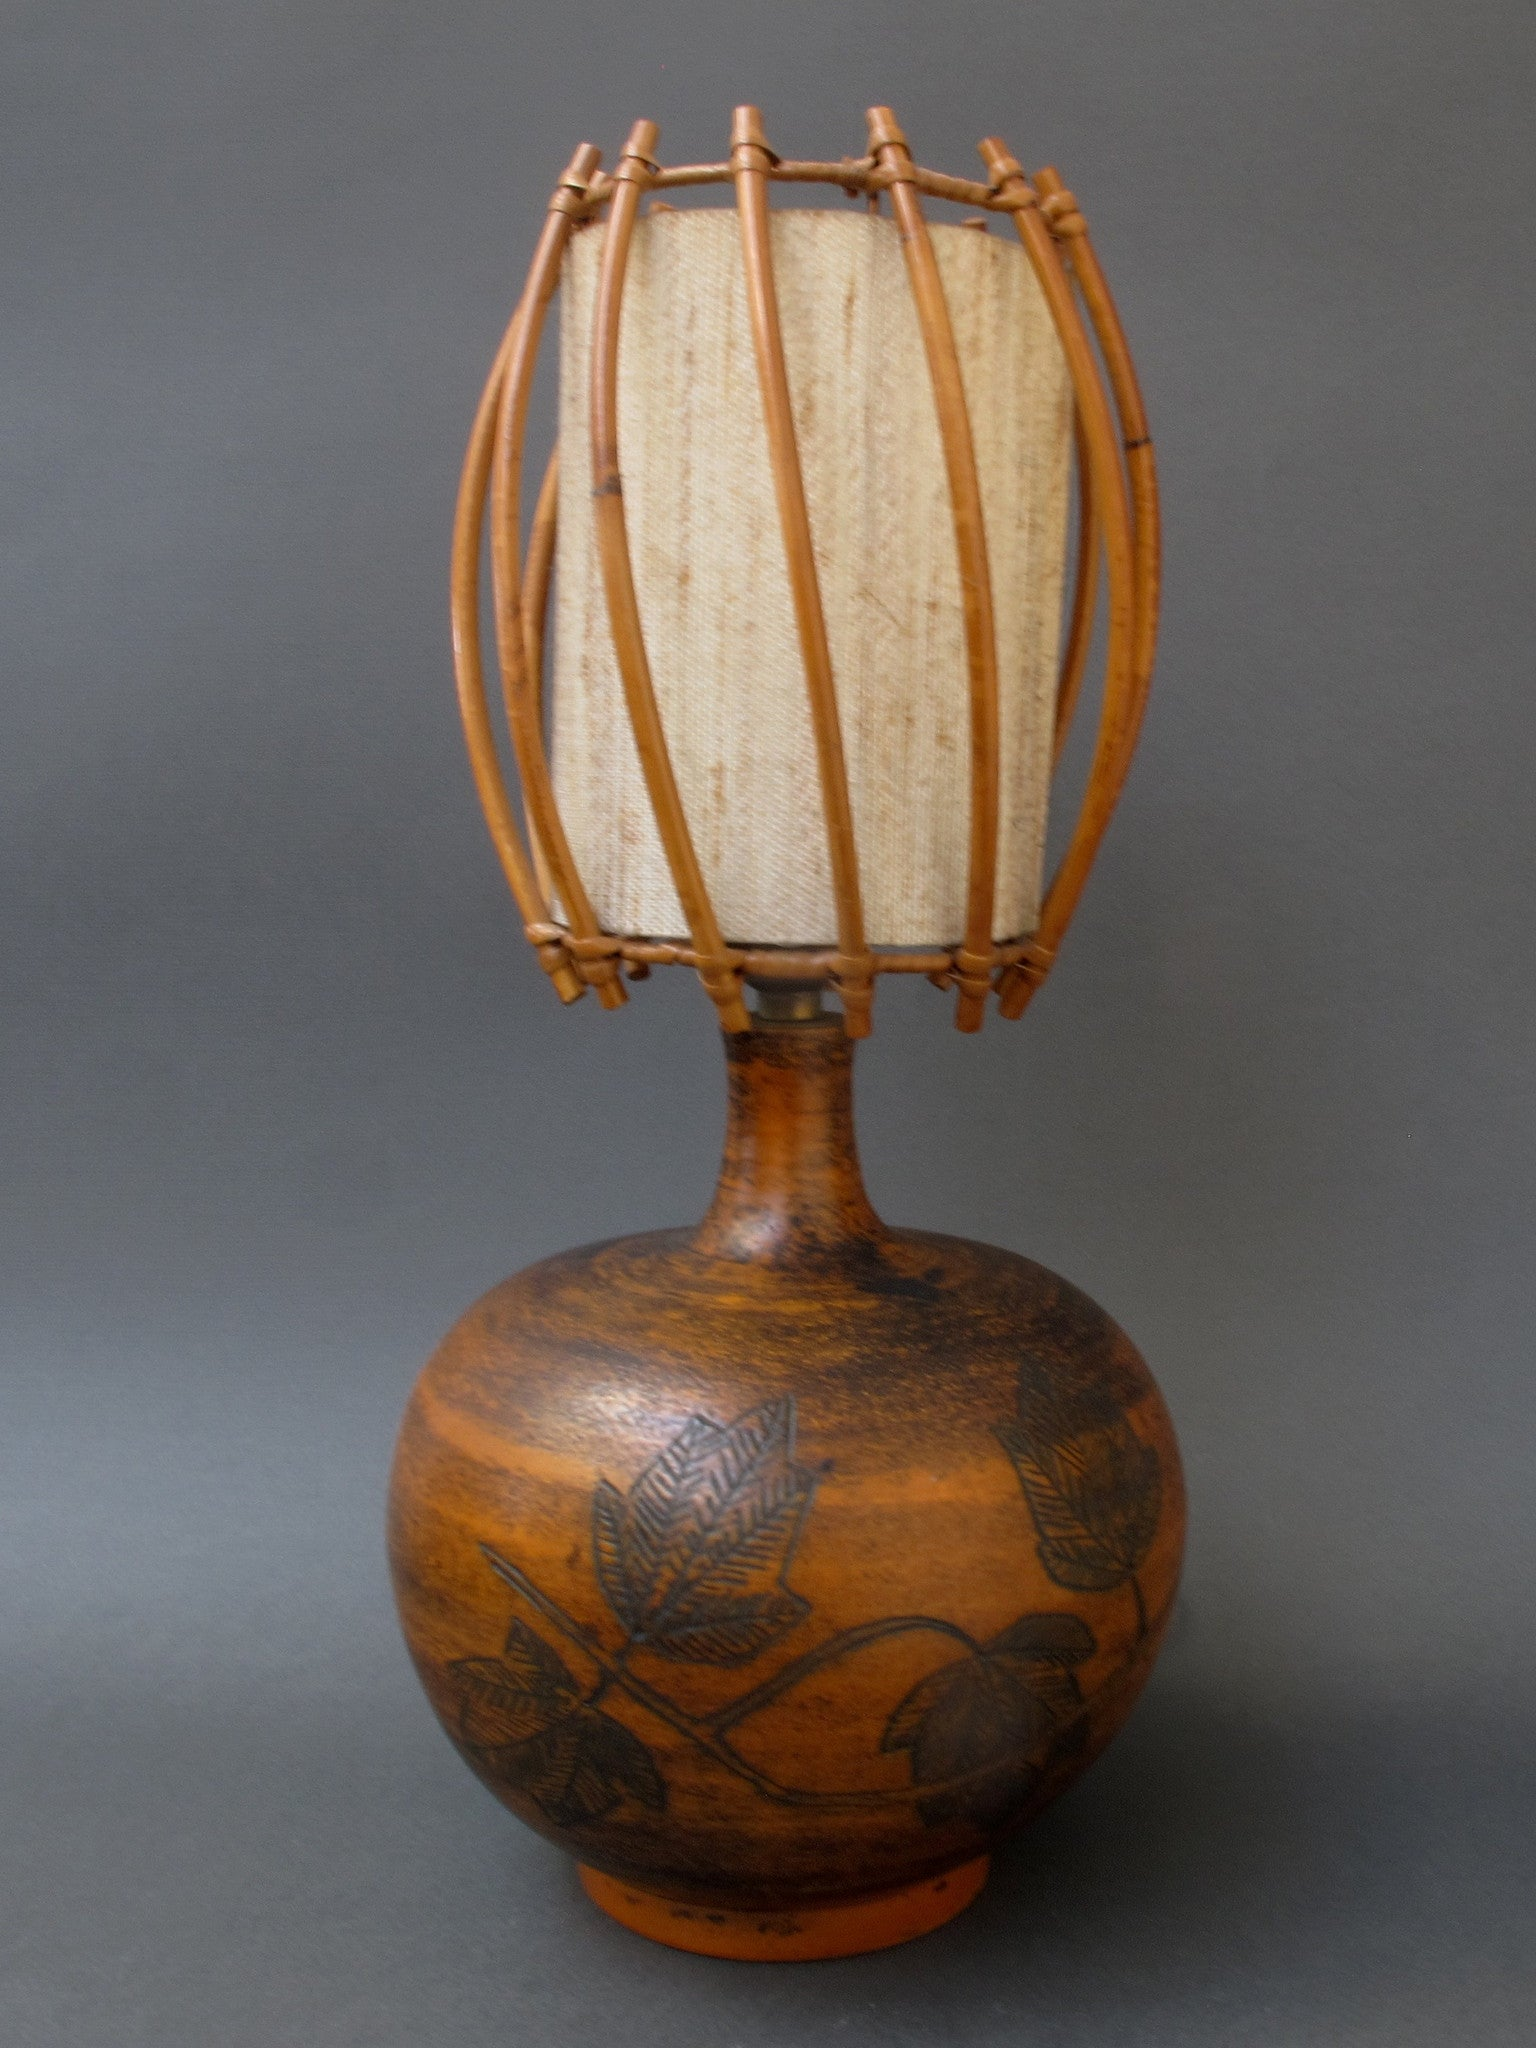 Ceramic Lamp with Leaf Motif and Original Rattan Shade by Jacques Blin (circa 1950s)